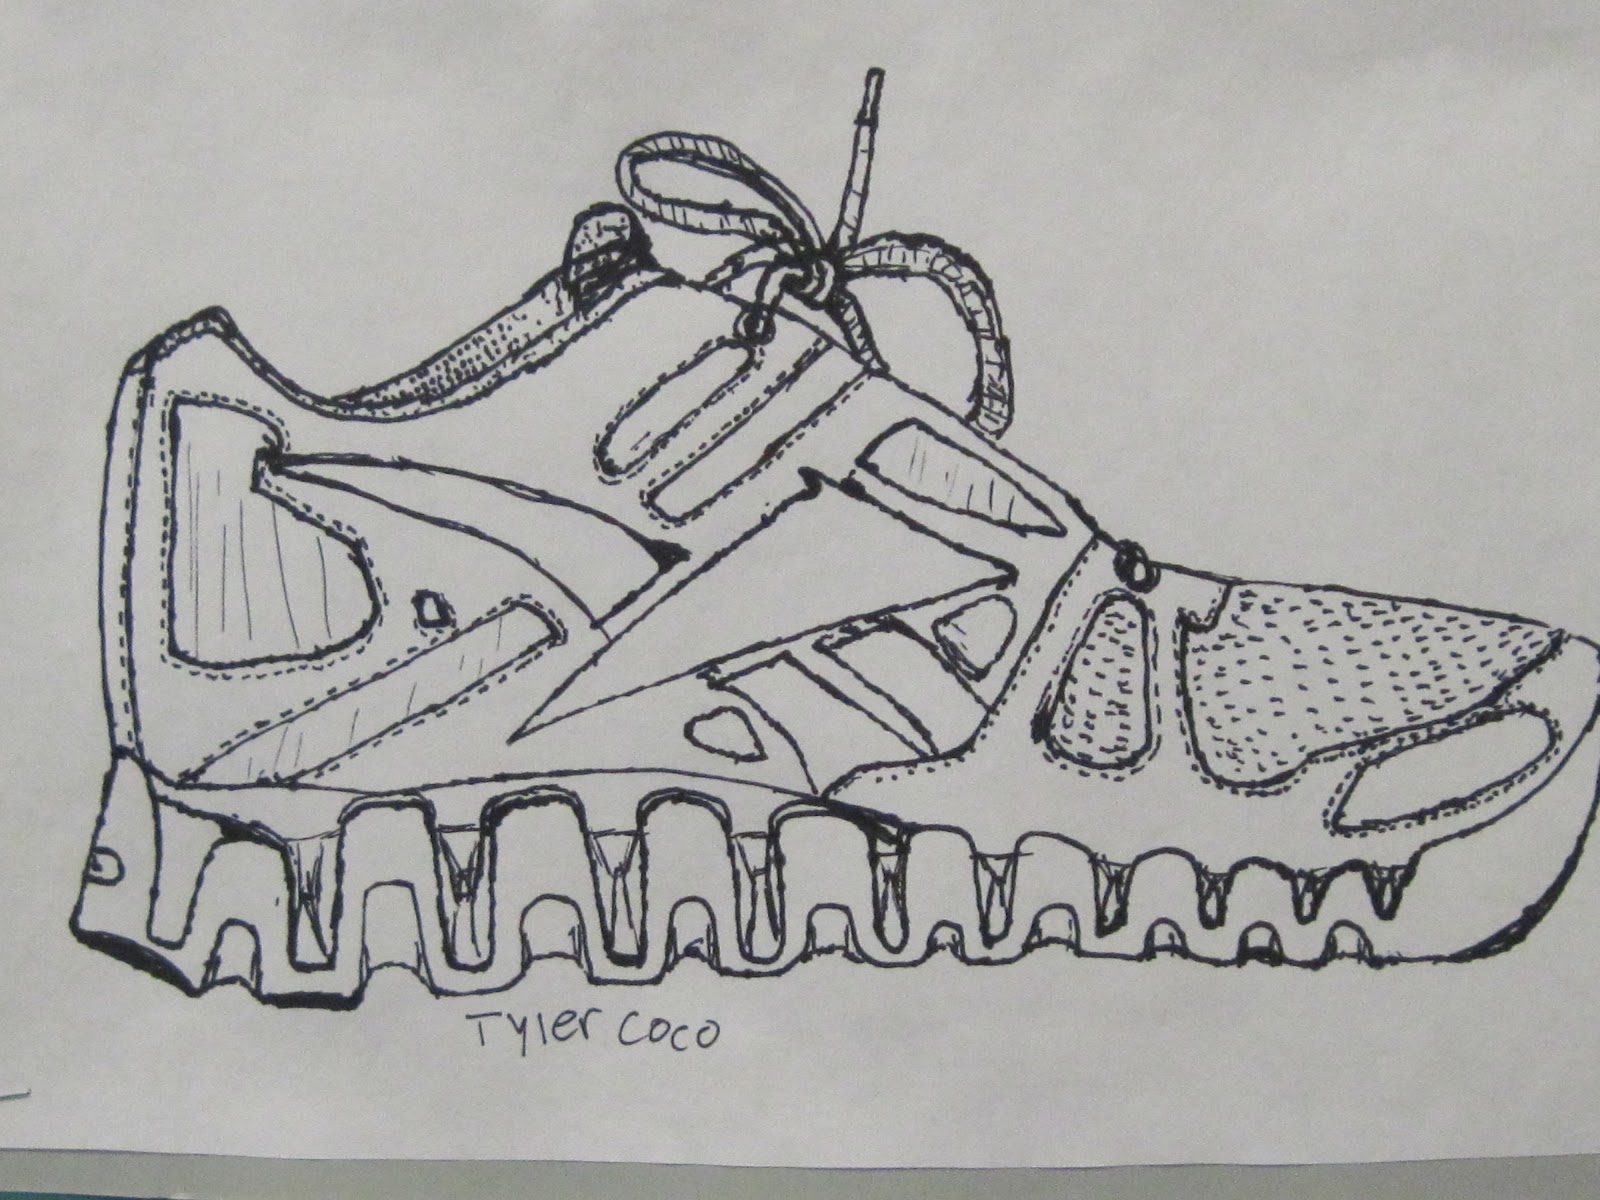 Drawn shoe contour drawing They friend's that so they